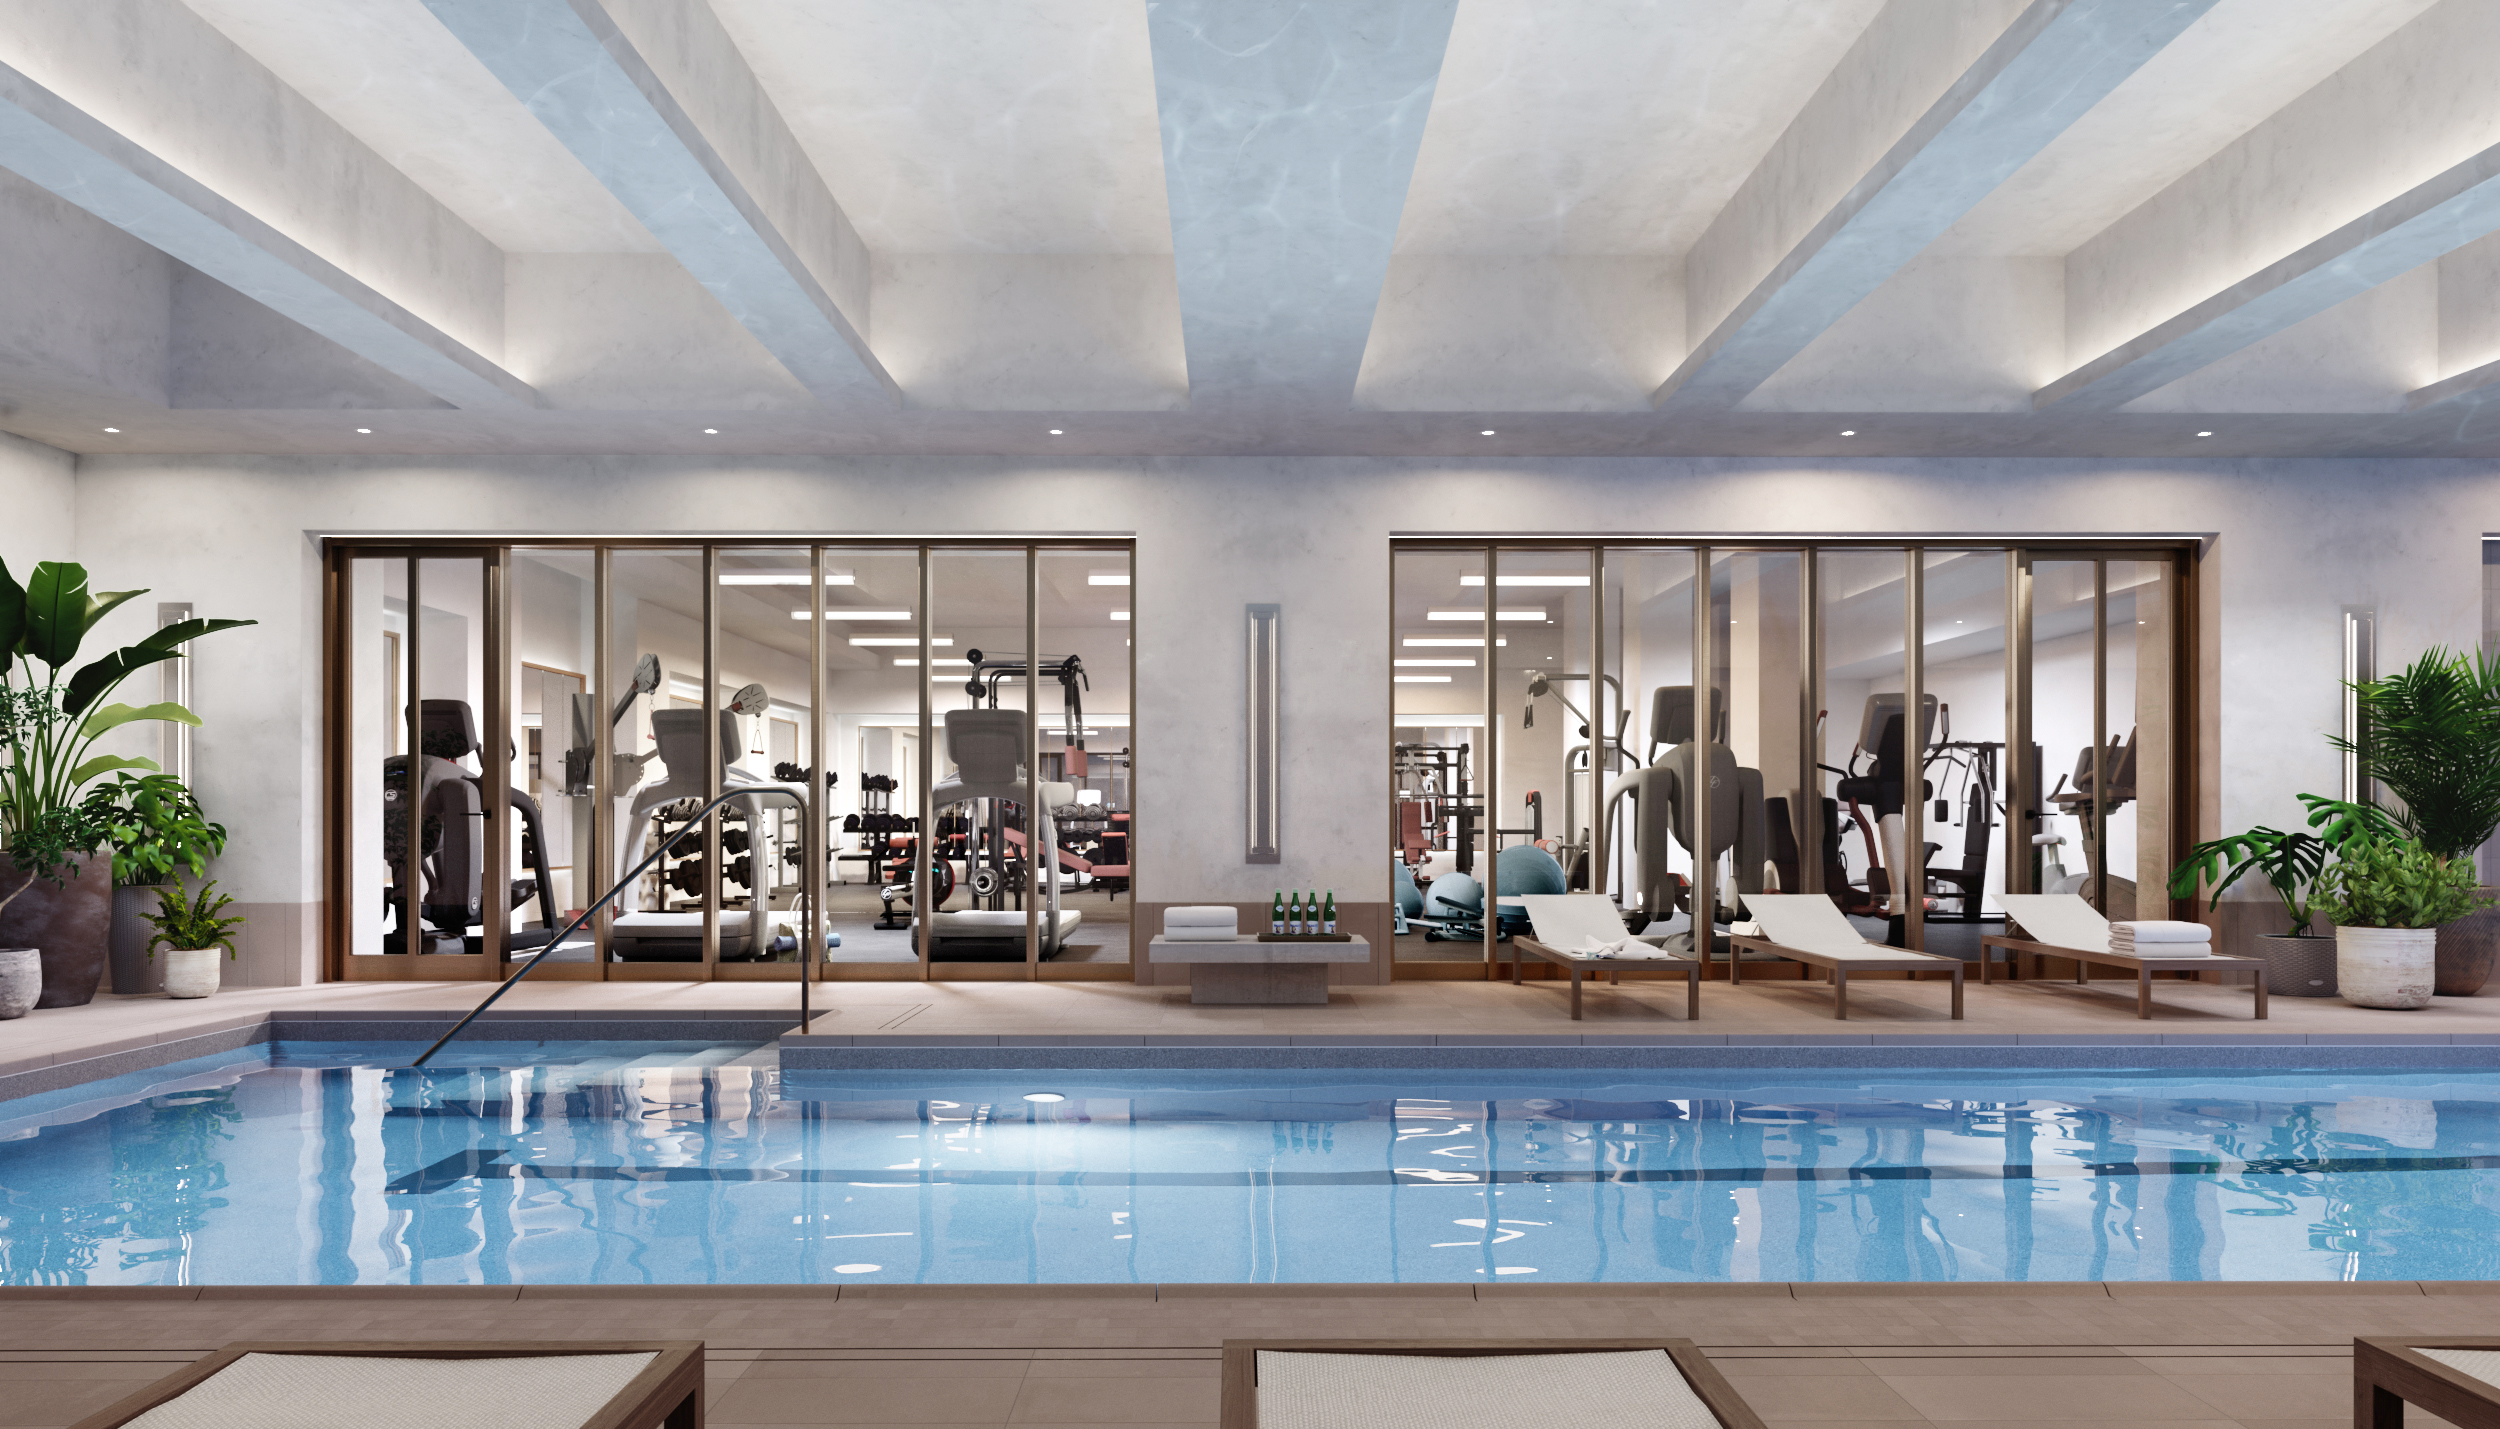 Vandewater Fitness Room and Pool Rendering